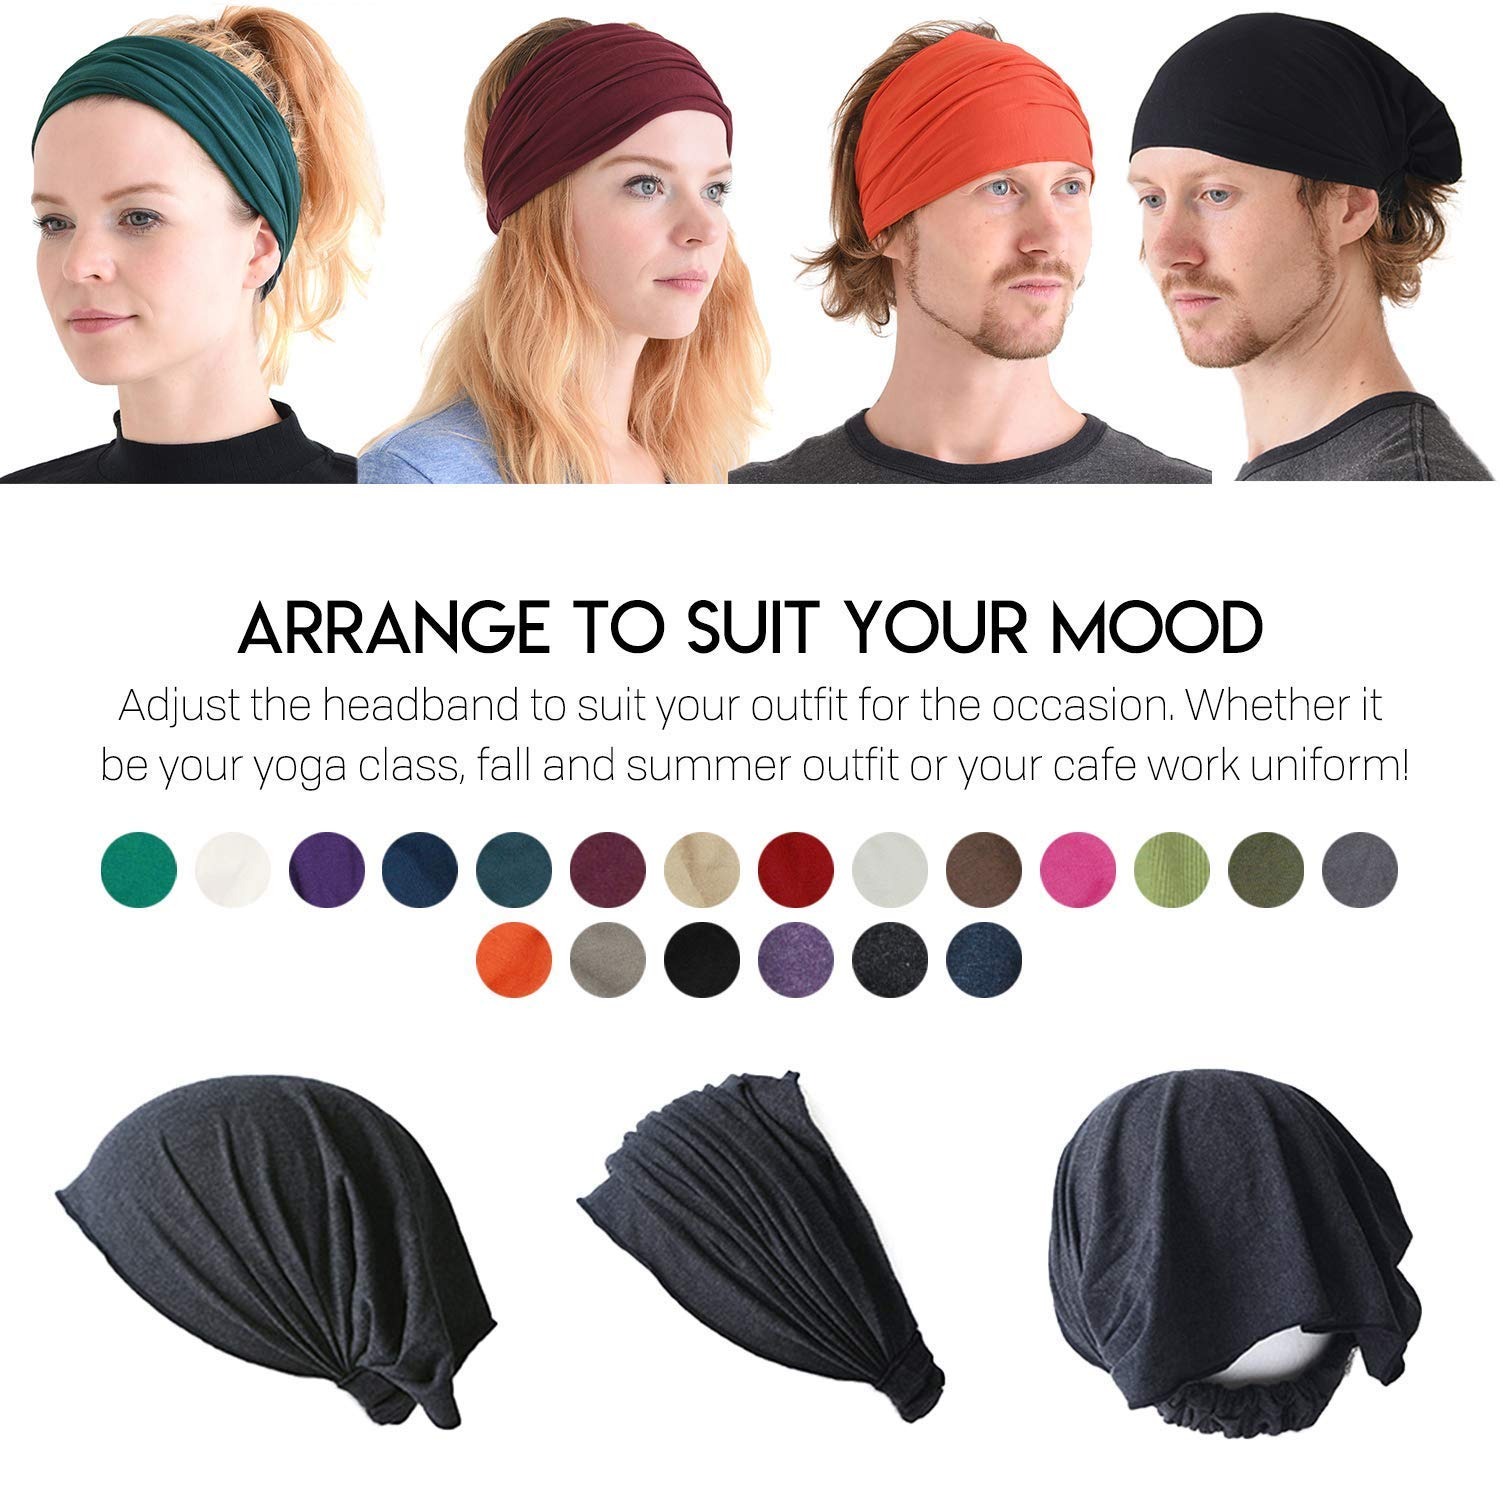 Black Japanese Bandana Headbands for Men and Women – Comfortable Head Bands with Elastic Secure Snug Fit Ideal Runners Fitness Sports Football Tennis Stylish Lightweight M by CCHARM (Image #10)